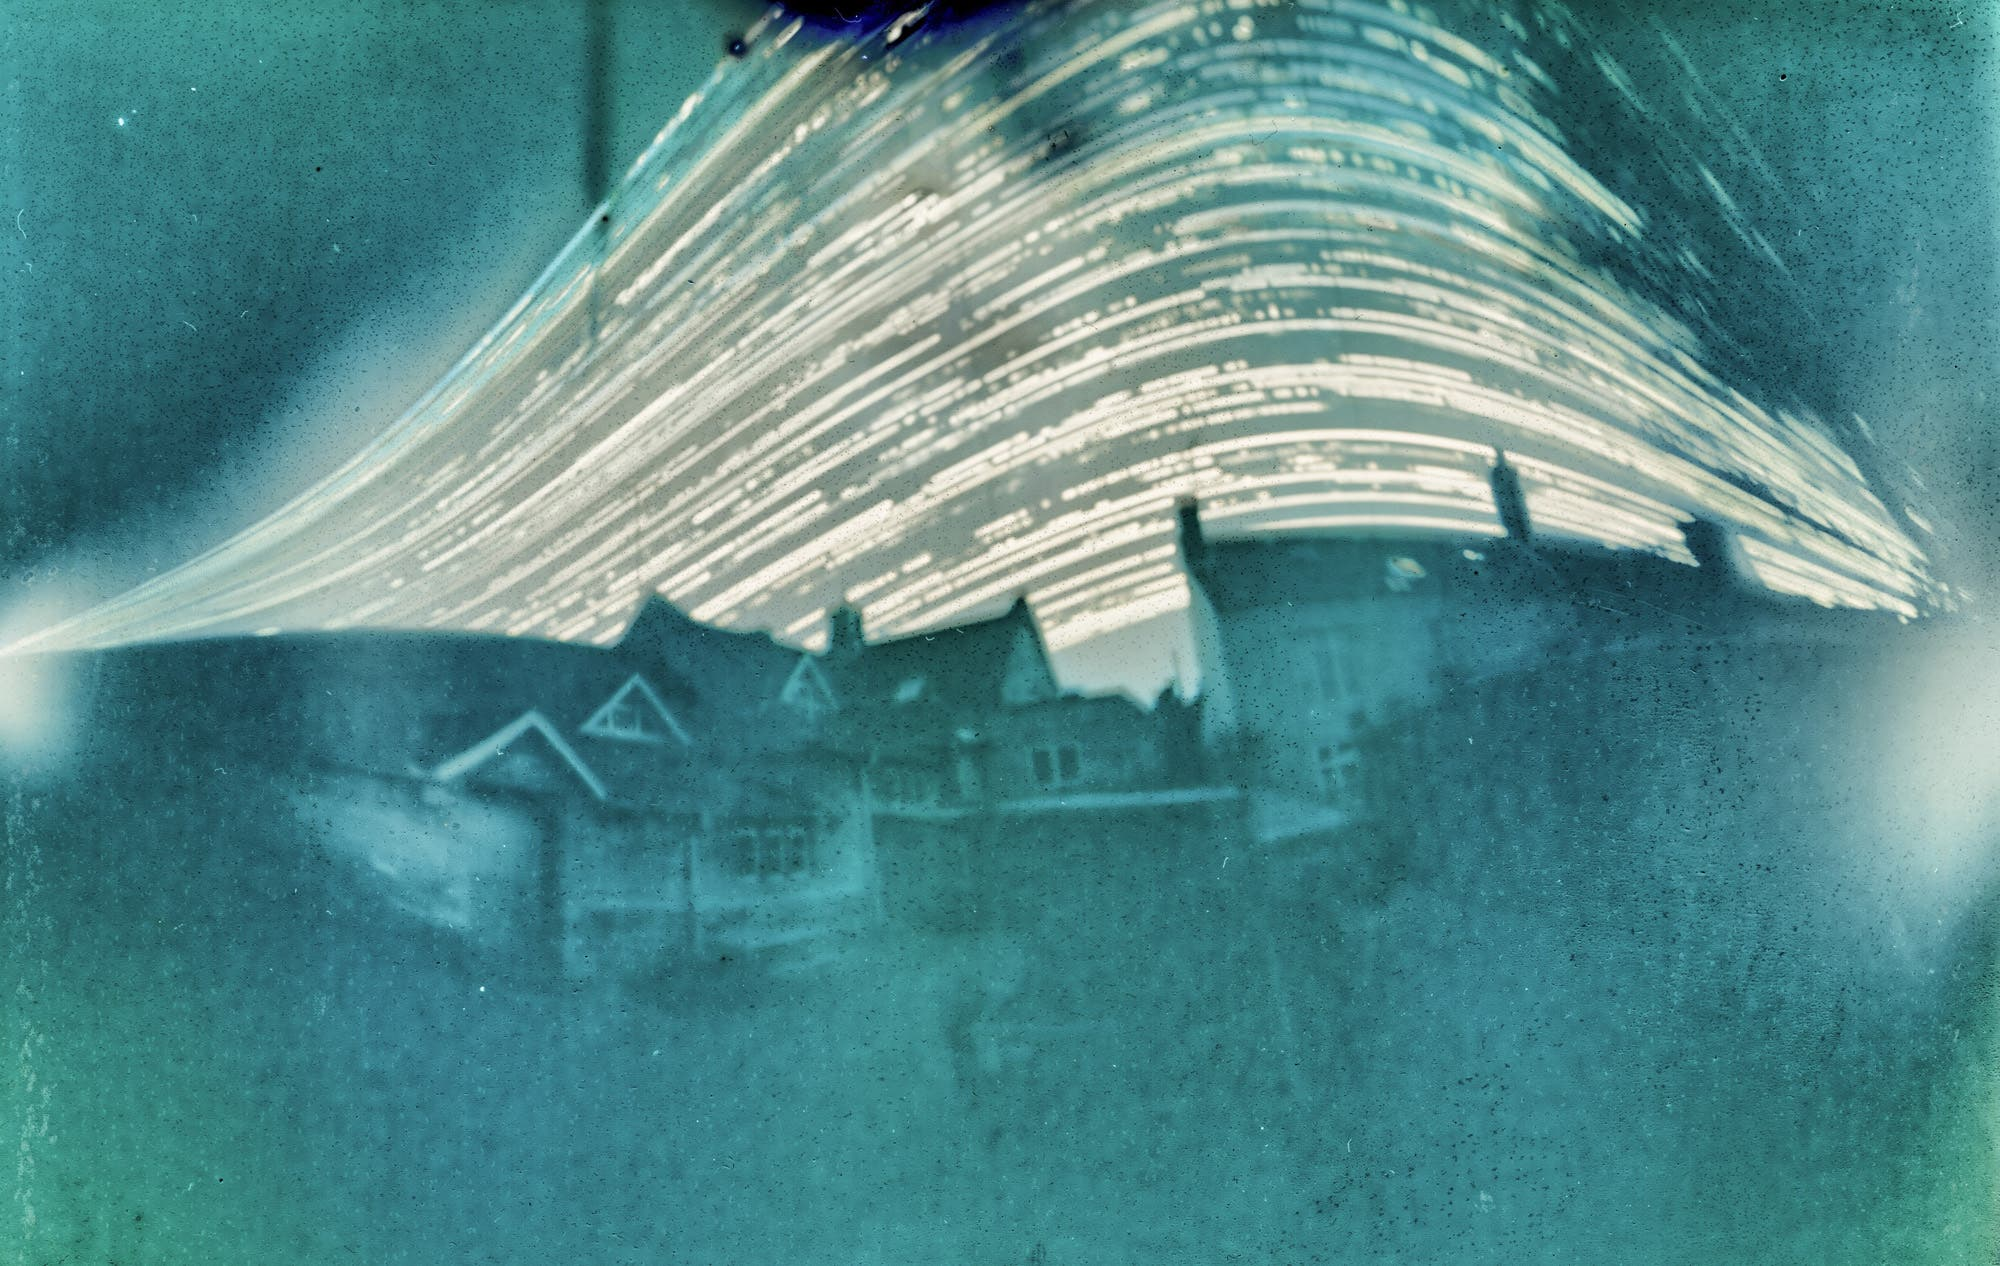 Making a Six Month Pinhole Exposure From a Beer Can